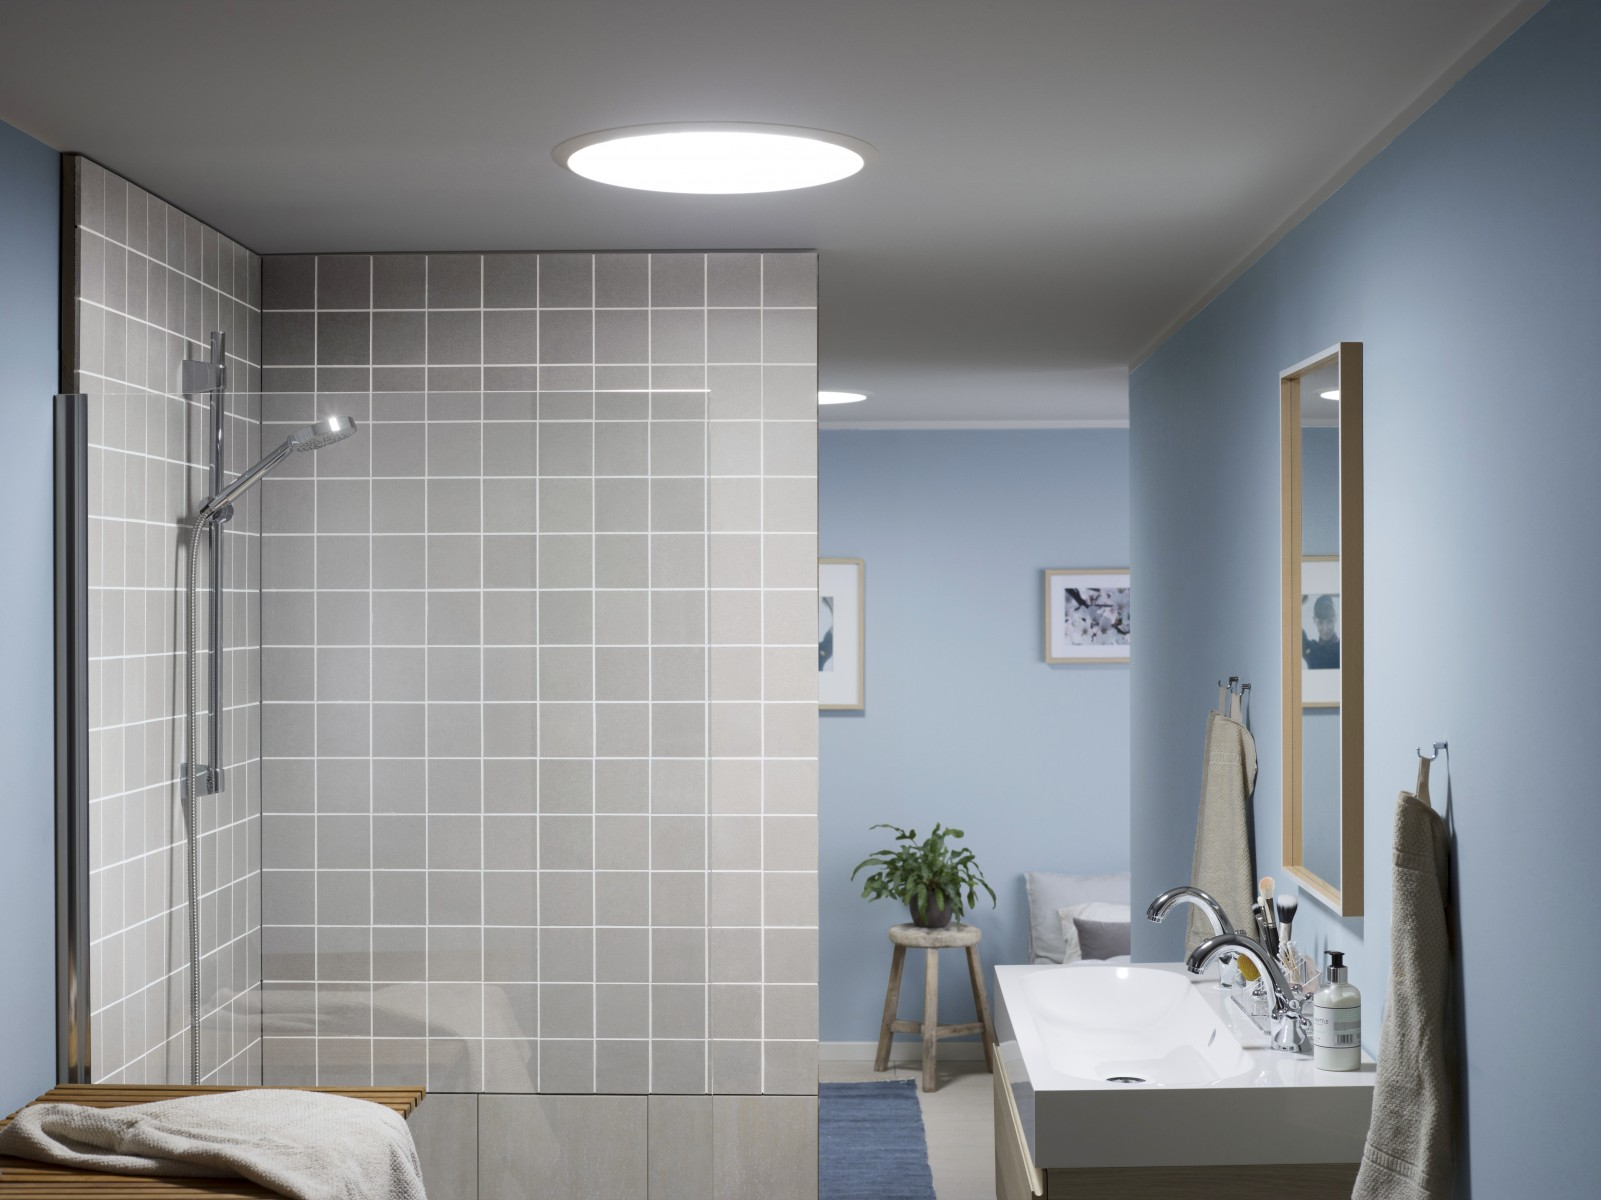 New velux sun tunnel brings daylight to the darkest space for Finestre a tetto velux prezzi